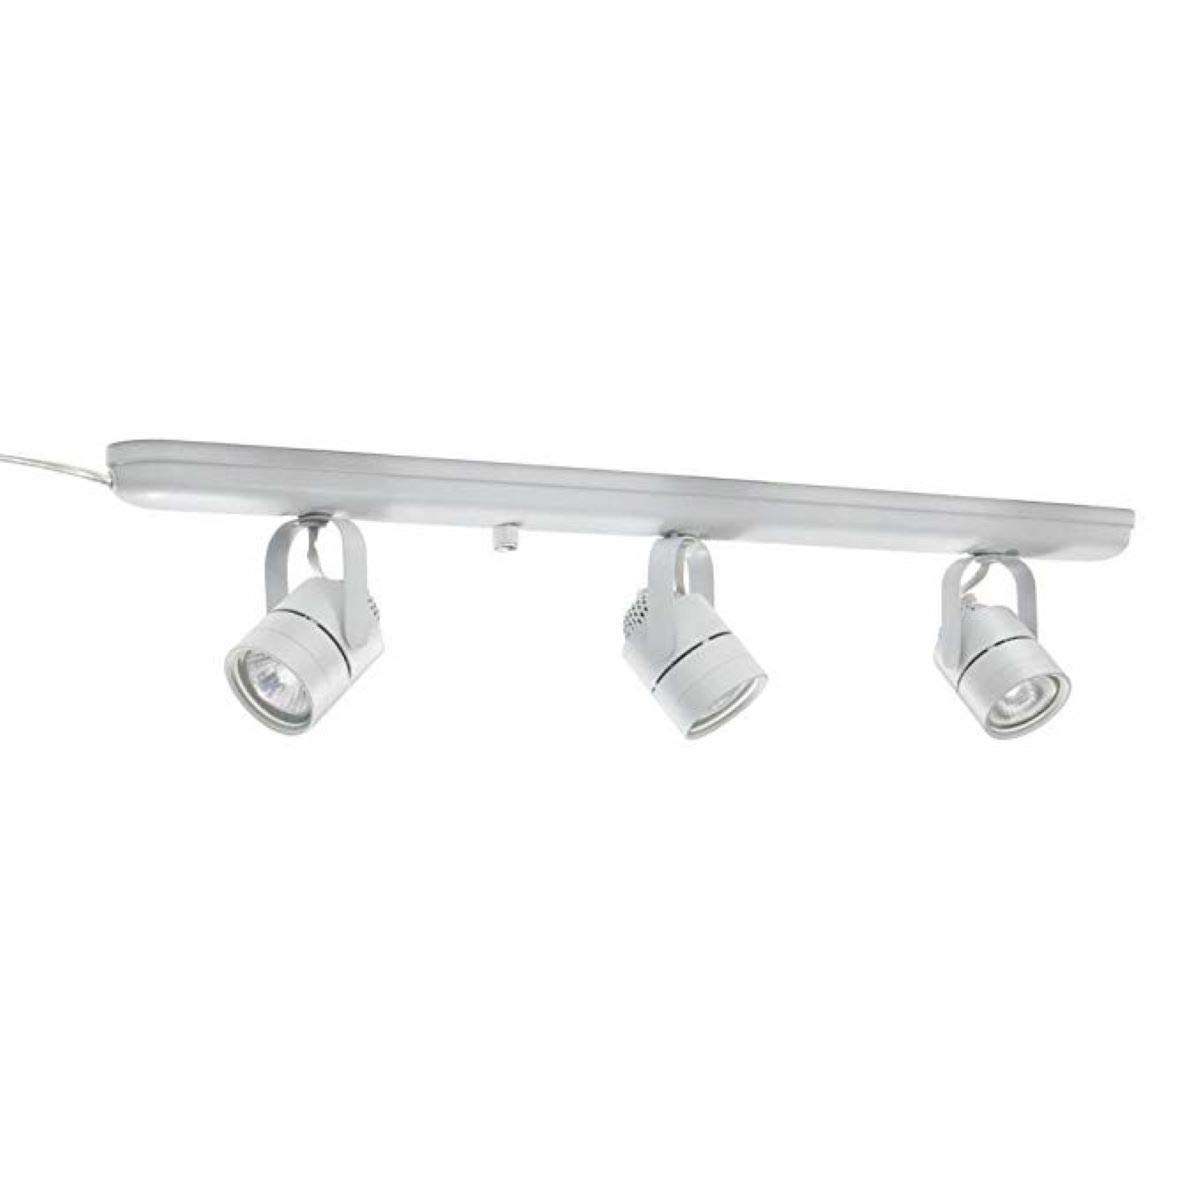 Lithonia Lighting LTKMSBK MR16GU10 3L MW M4 Mesh Back 3-Light Halogen Track Lighting Kit, 27'', White (Renewed)